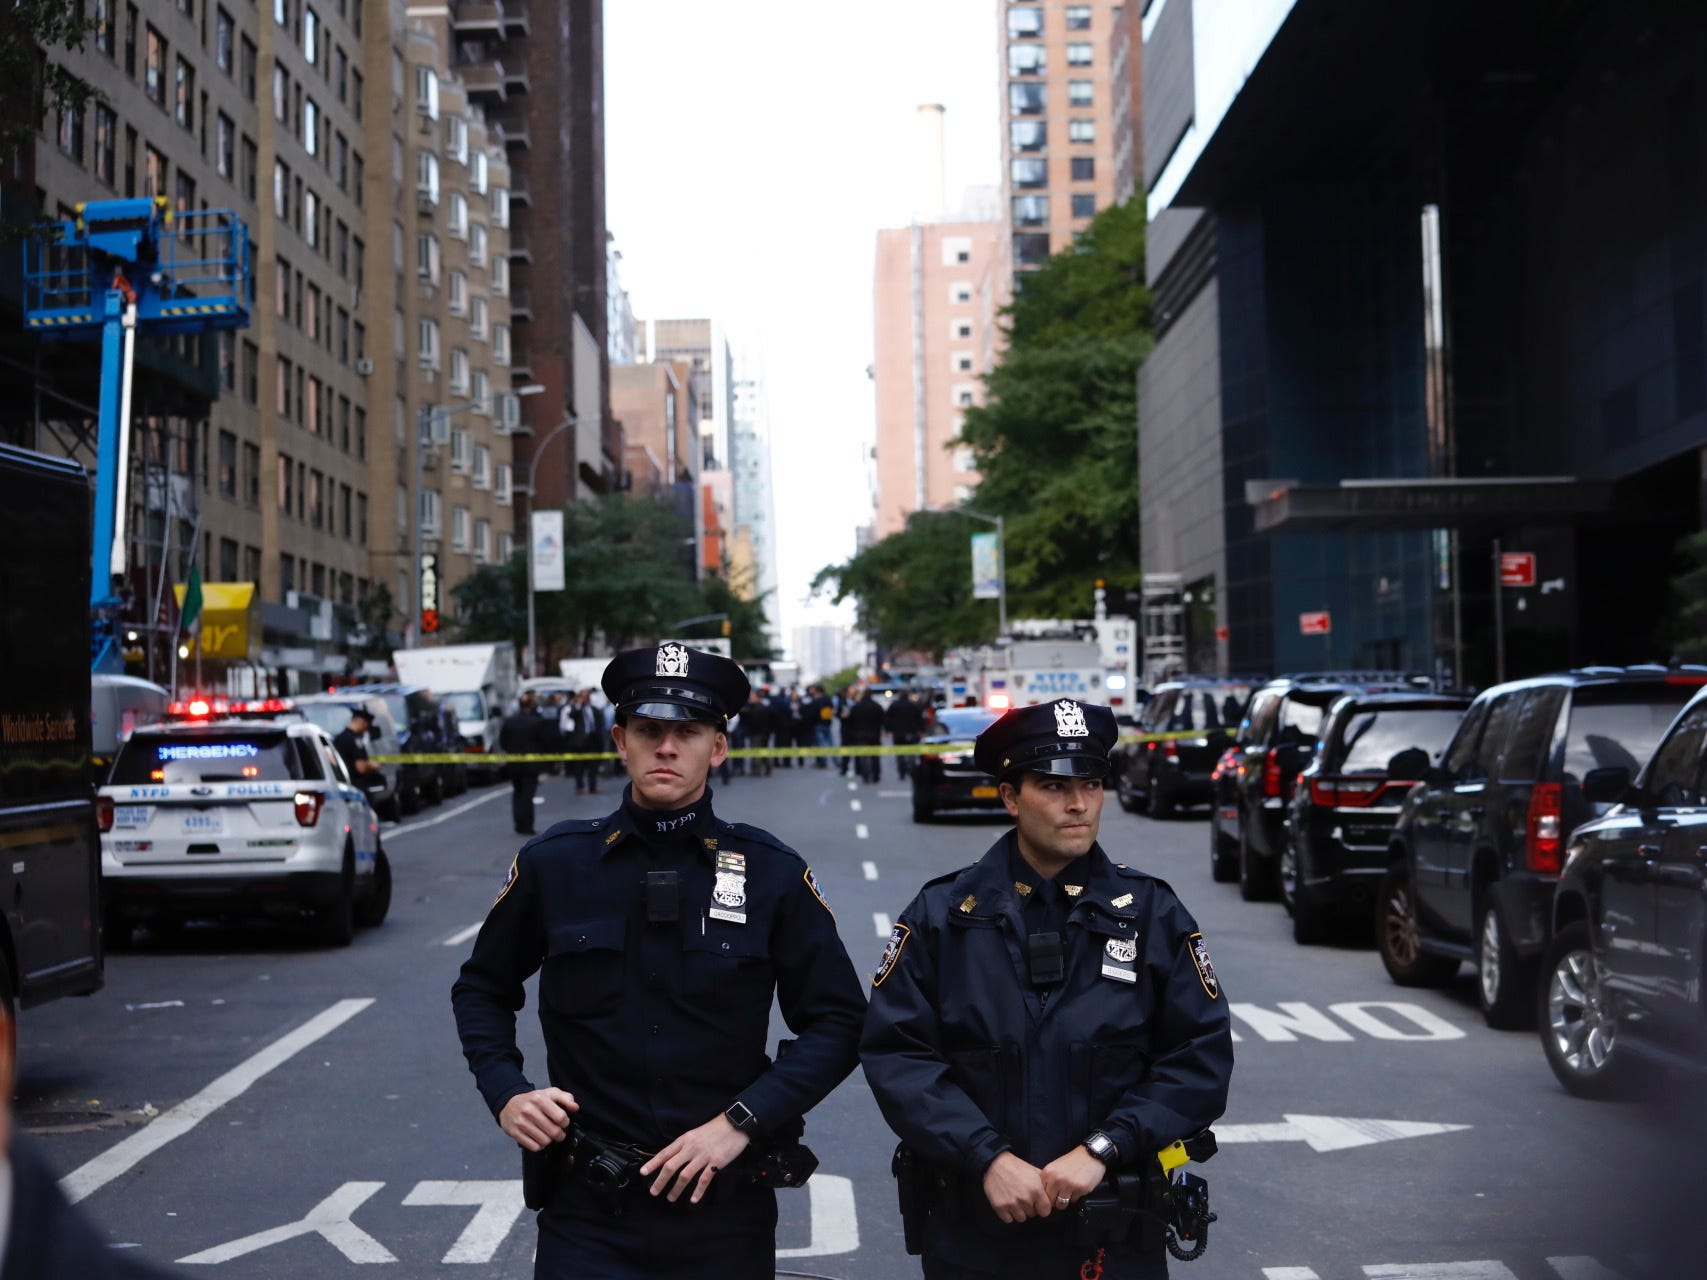 epa07116477 Police stand guard in a closed street after a bomb alert at the Time Warner offices in New York, New York, USA, 24 October 2018. According to news reports, New York police were called to a suspicious package sent to the Time Warner building in which CNN is located.  EPA-EFE/JUSTIN LANE ORG XMIT: NWY02